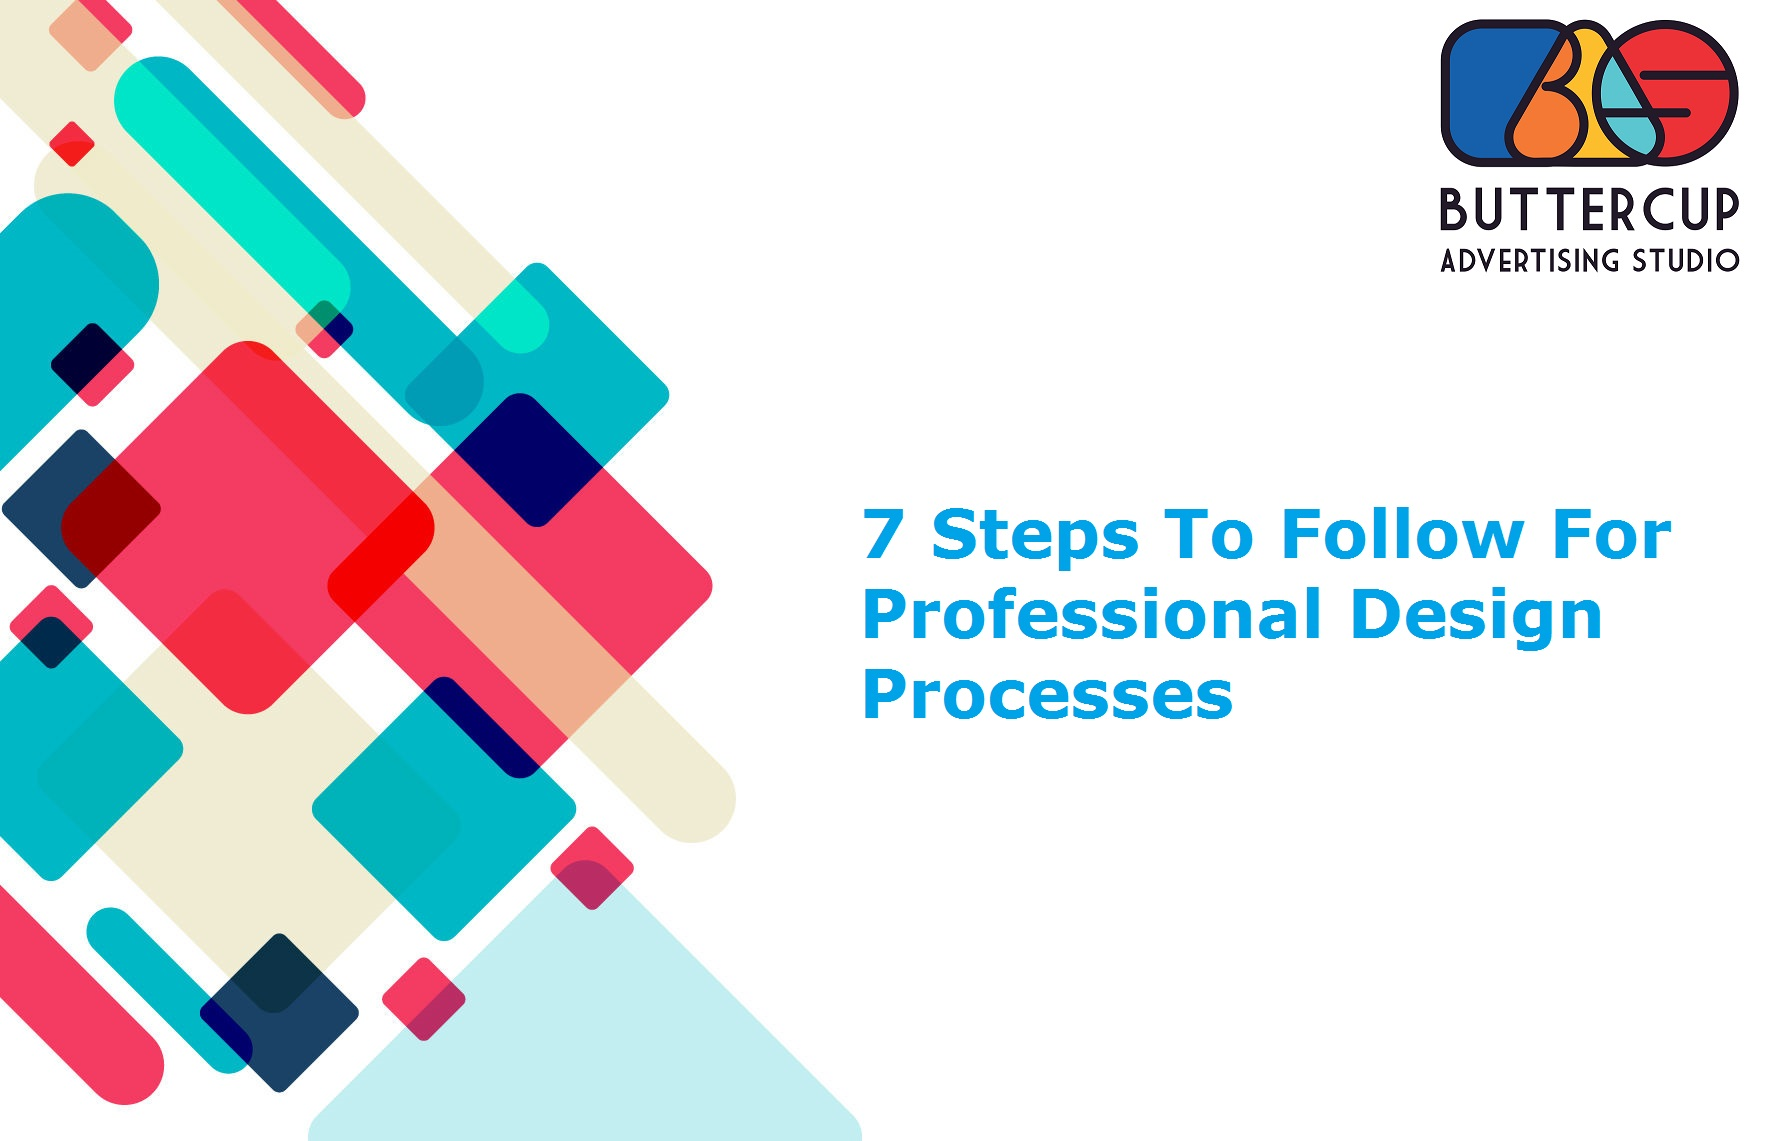 Professional Design Processes